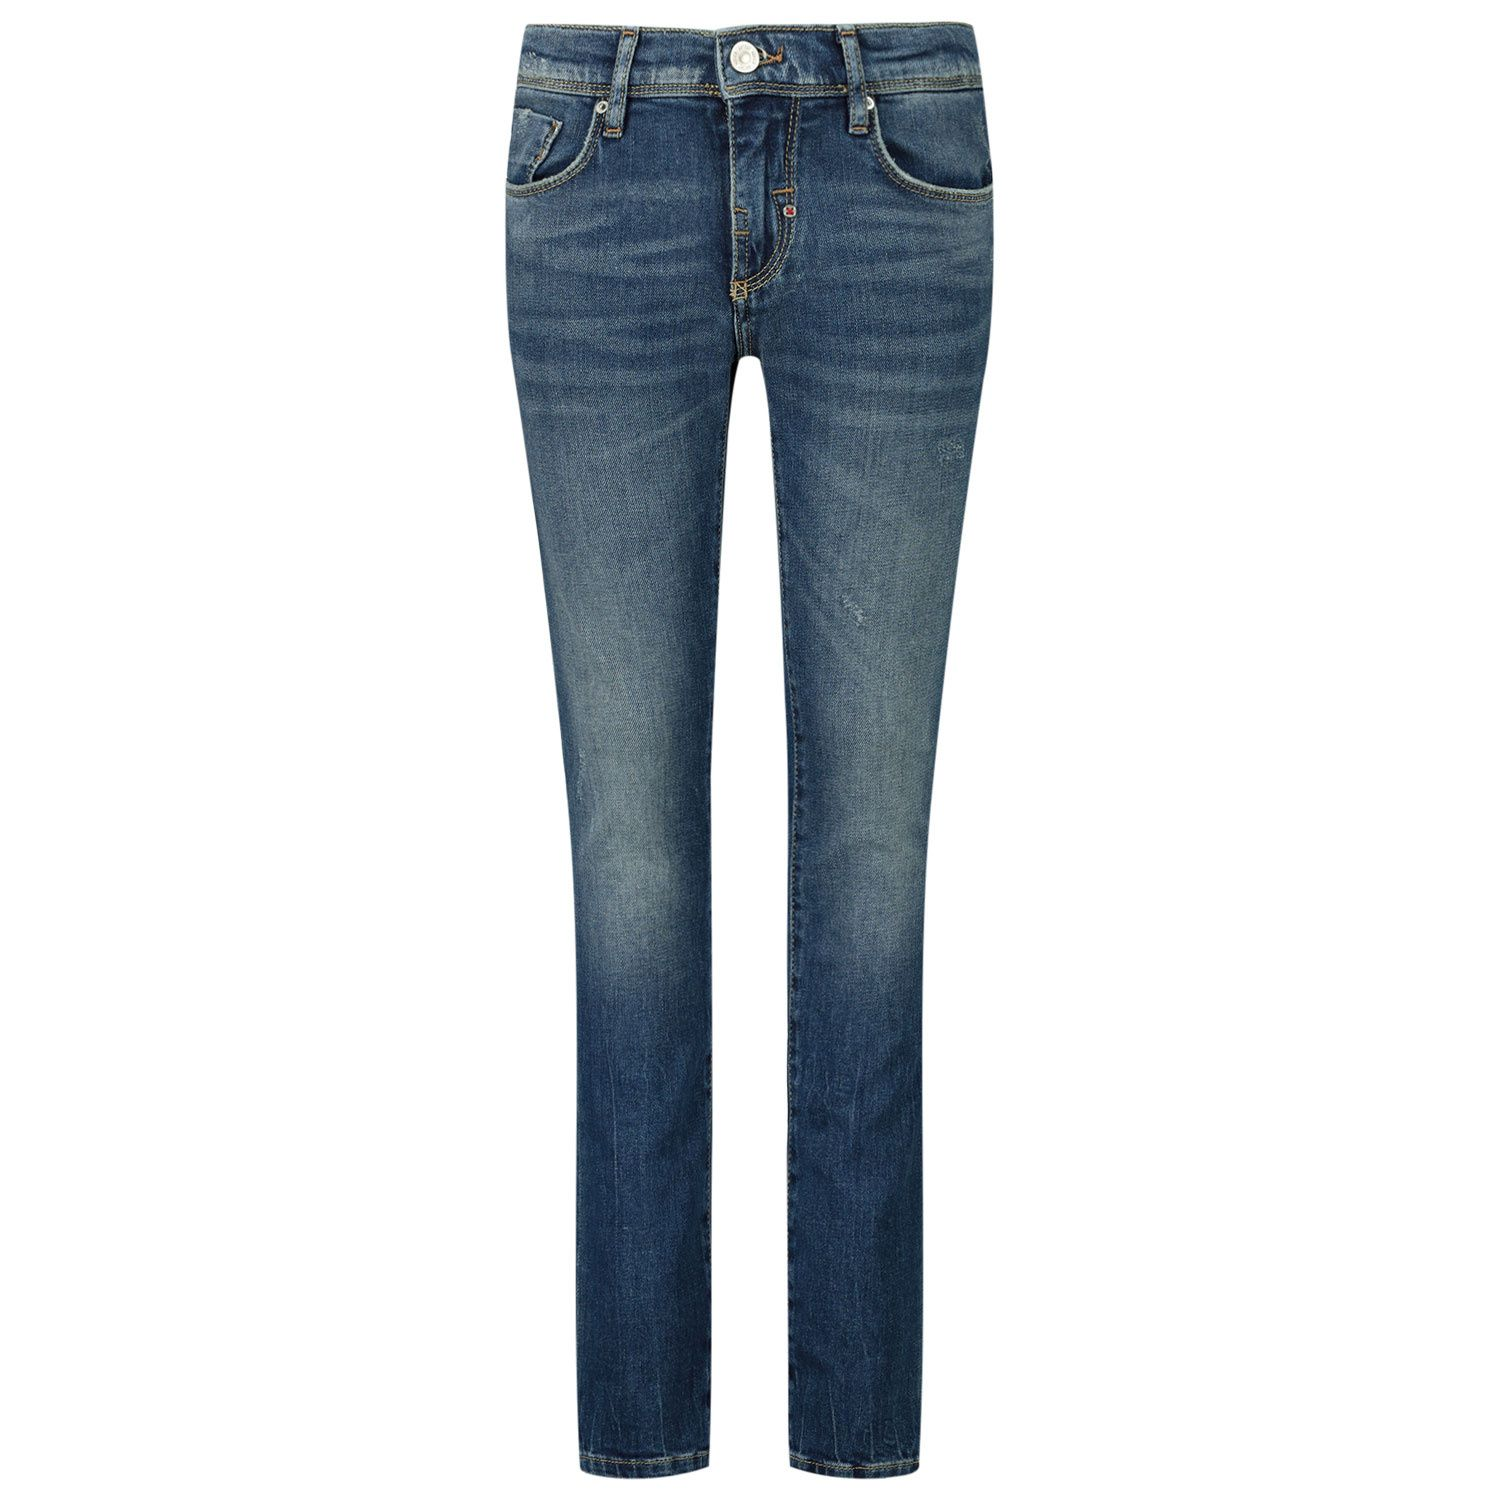 Picture of Antony Morato MFDT00054 FA750280 kids jeans jeans